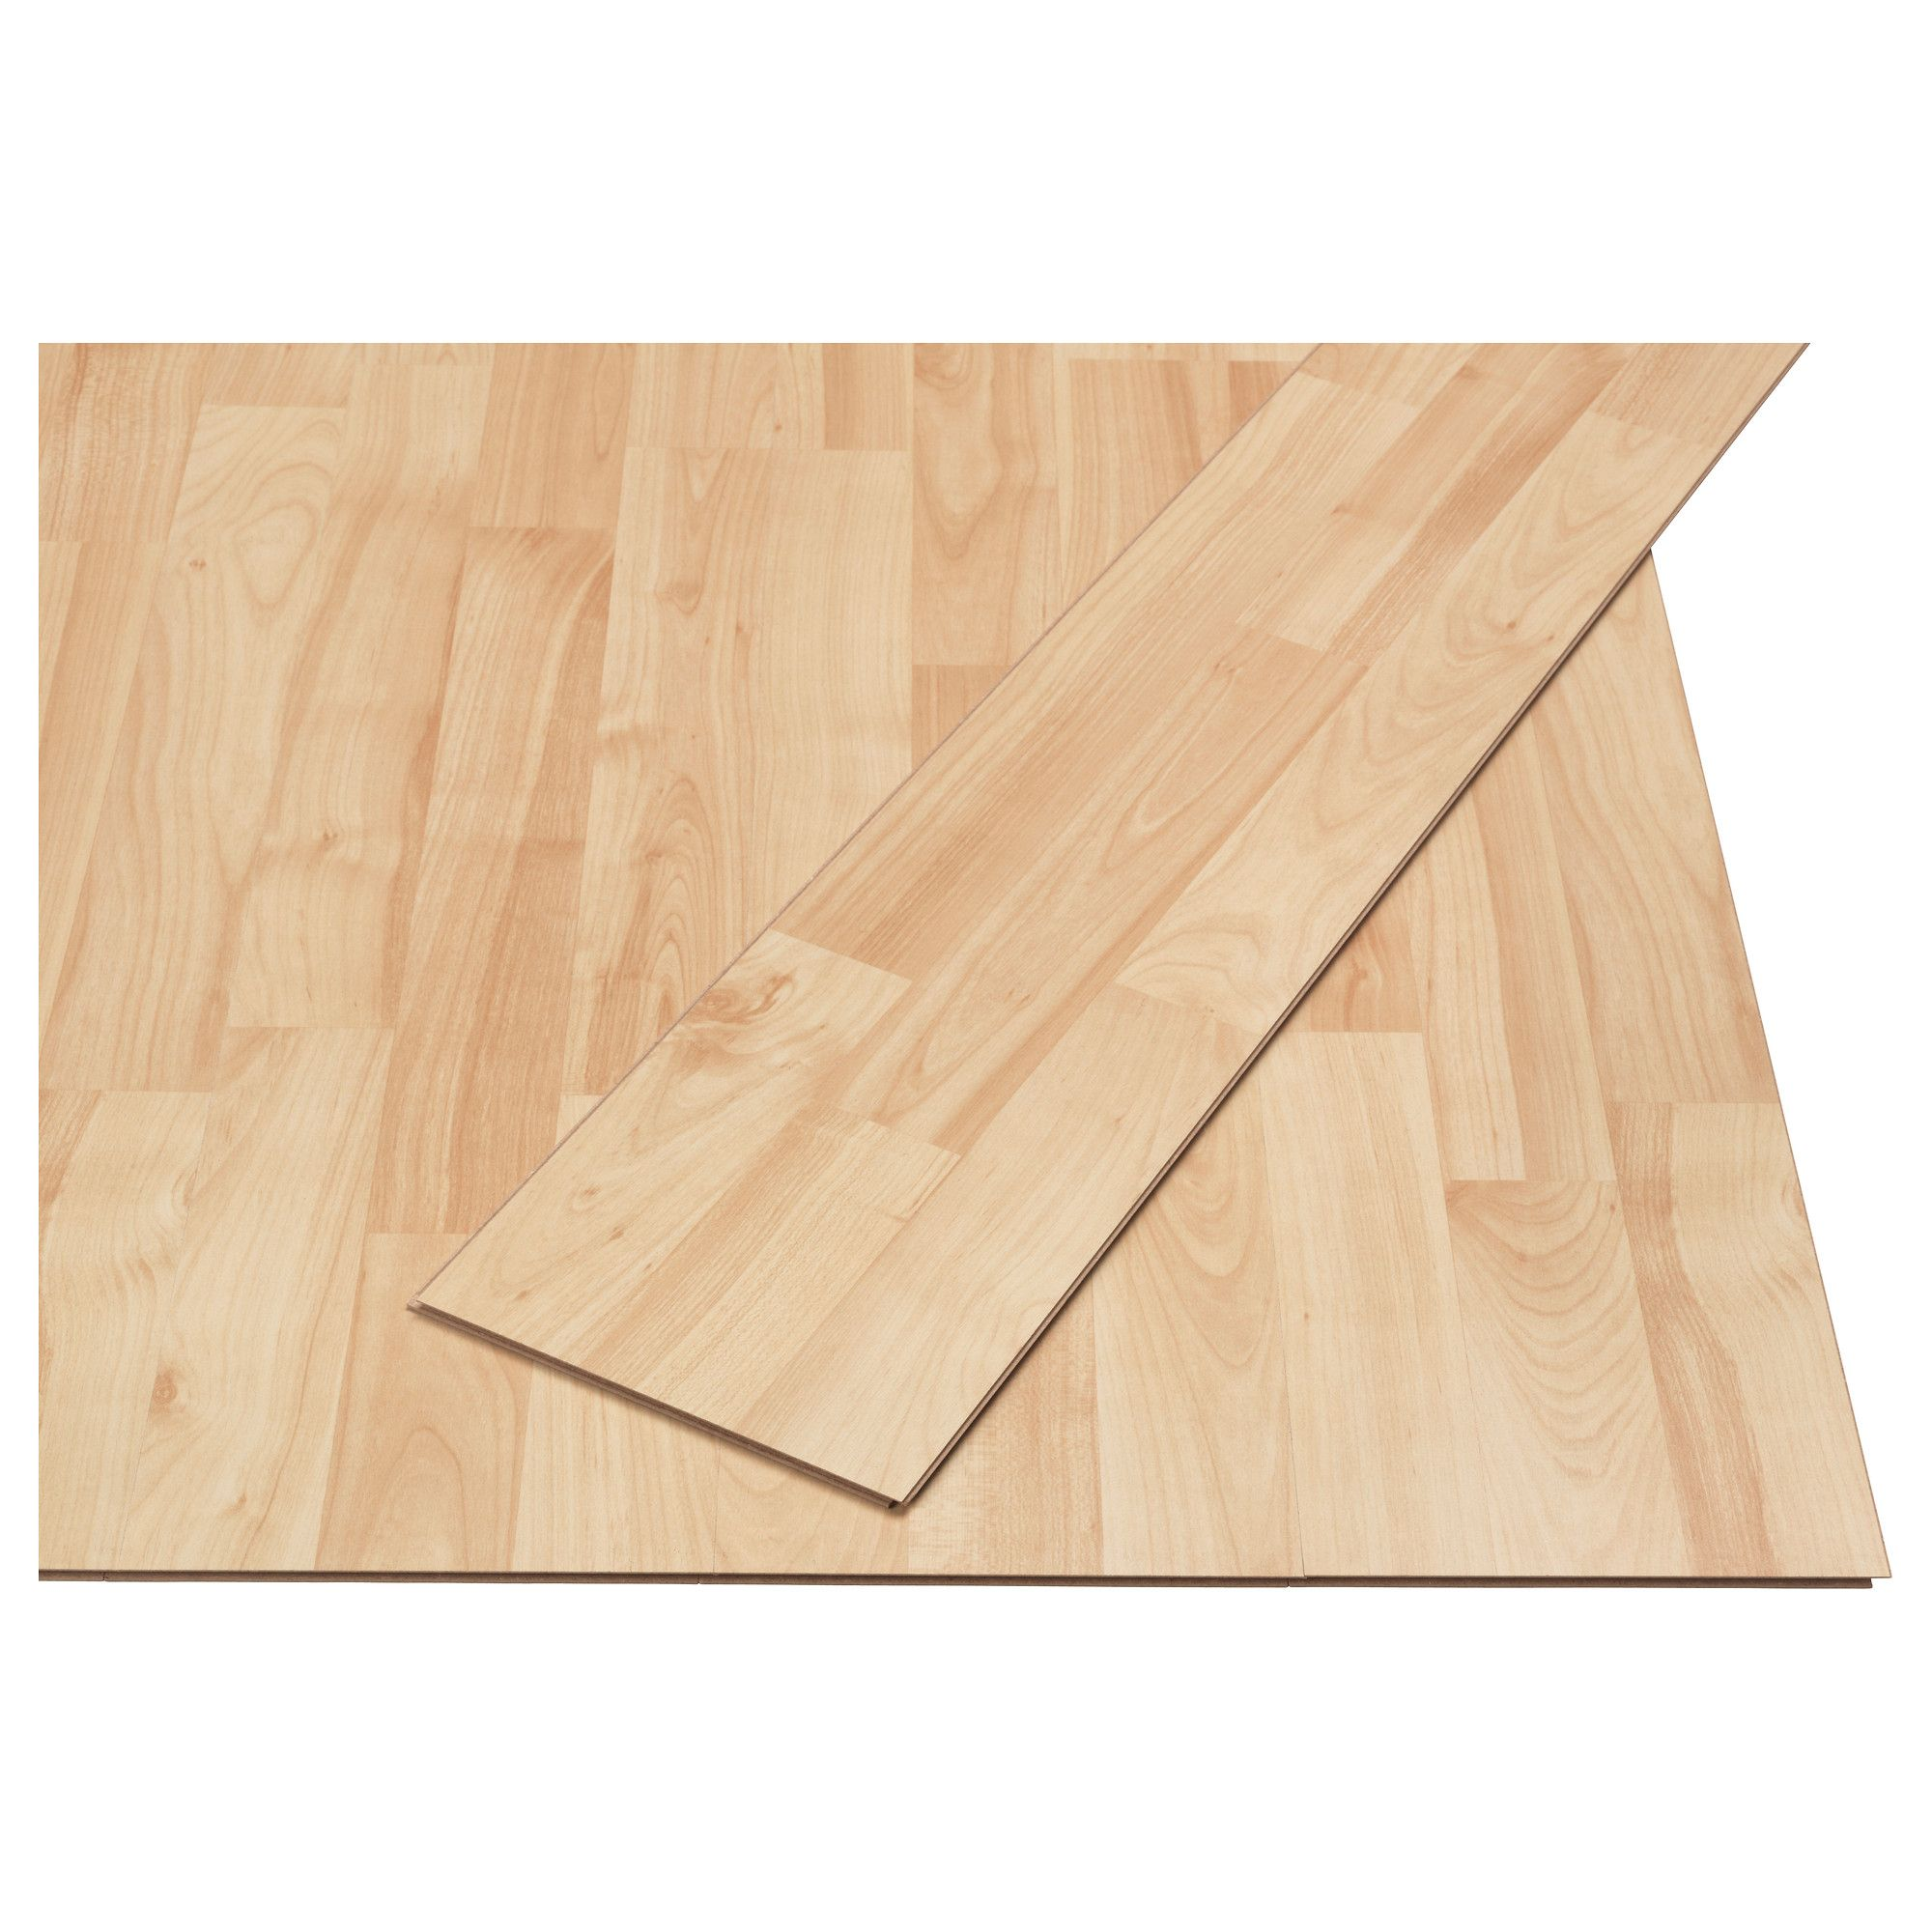 Tundra Laminated Flooring Ikea Small House Decor And Design